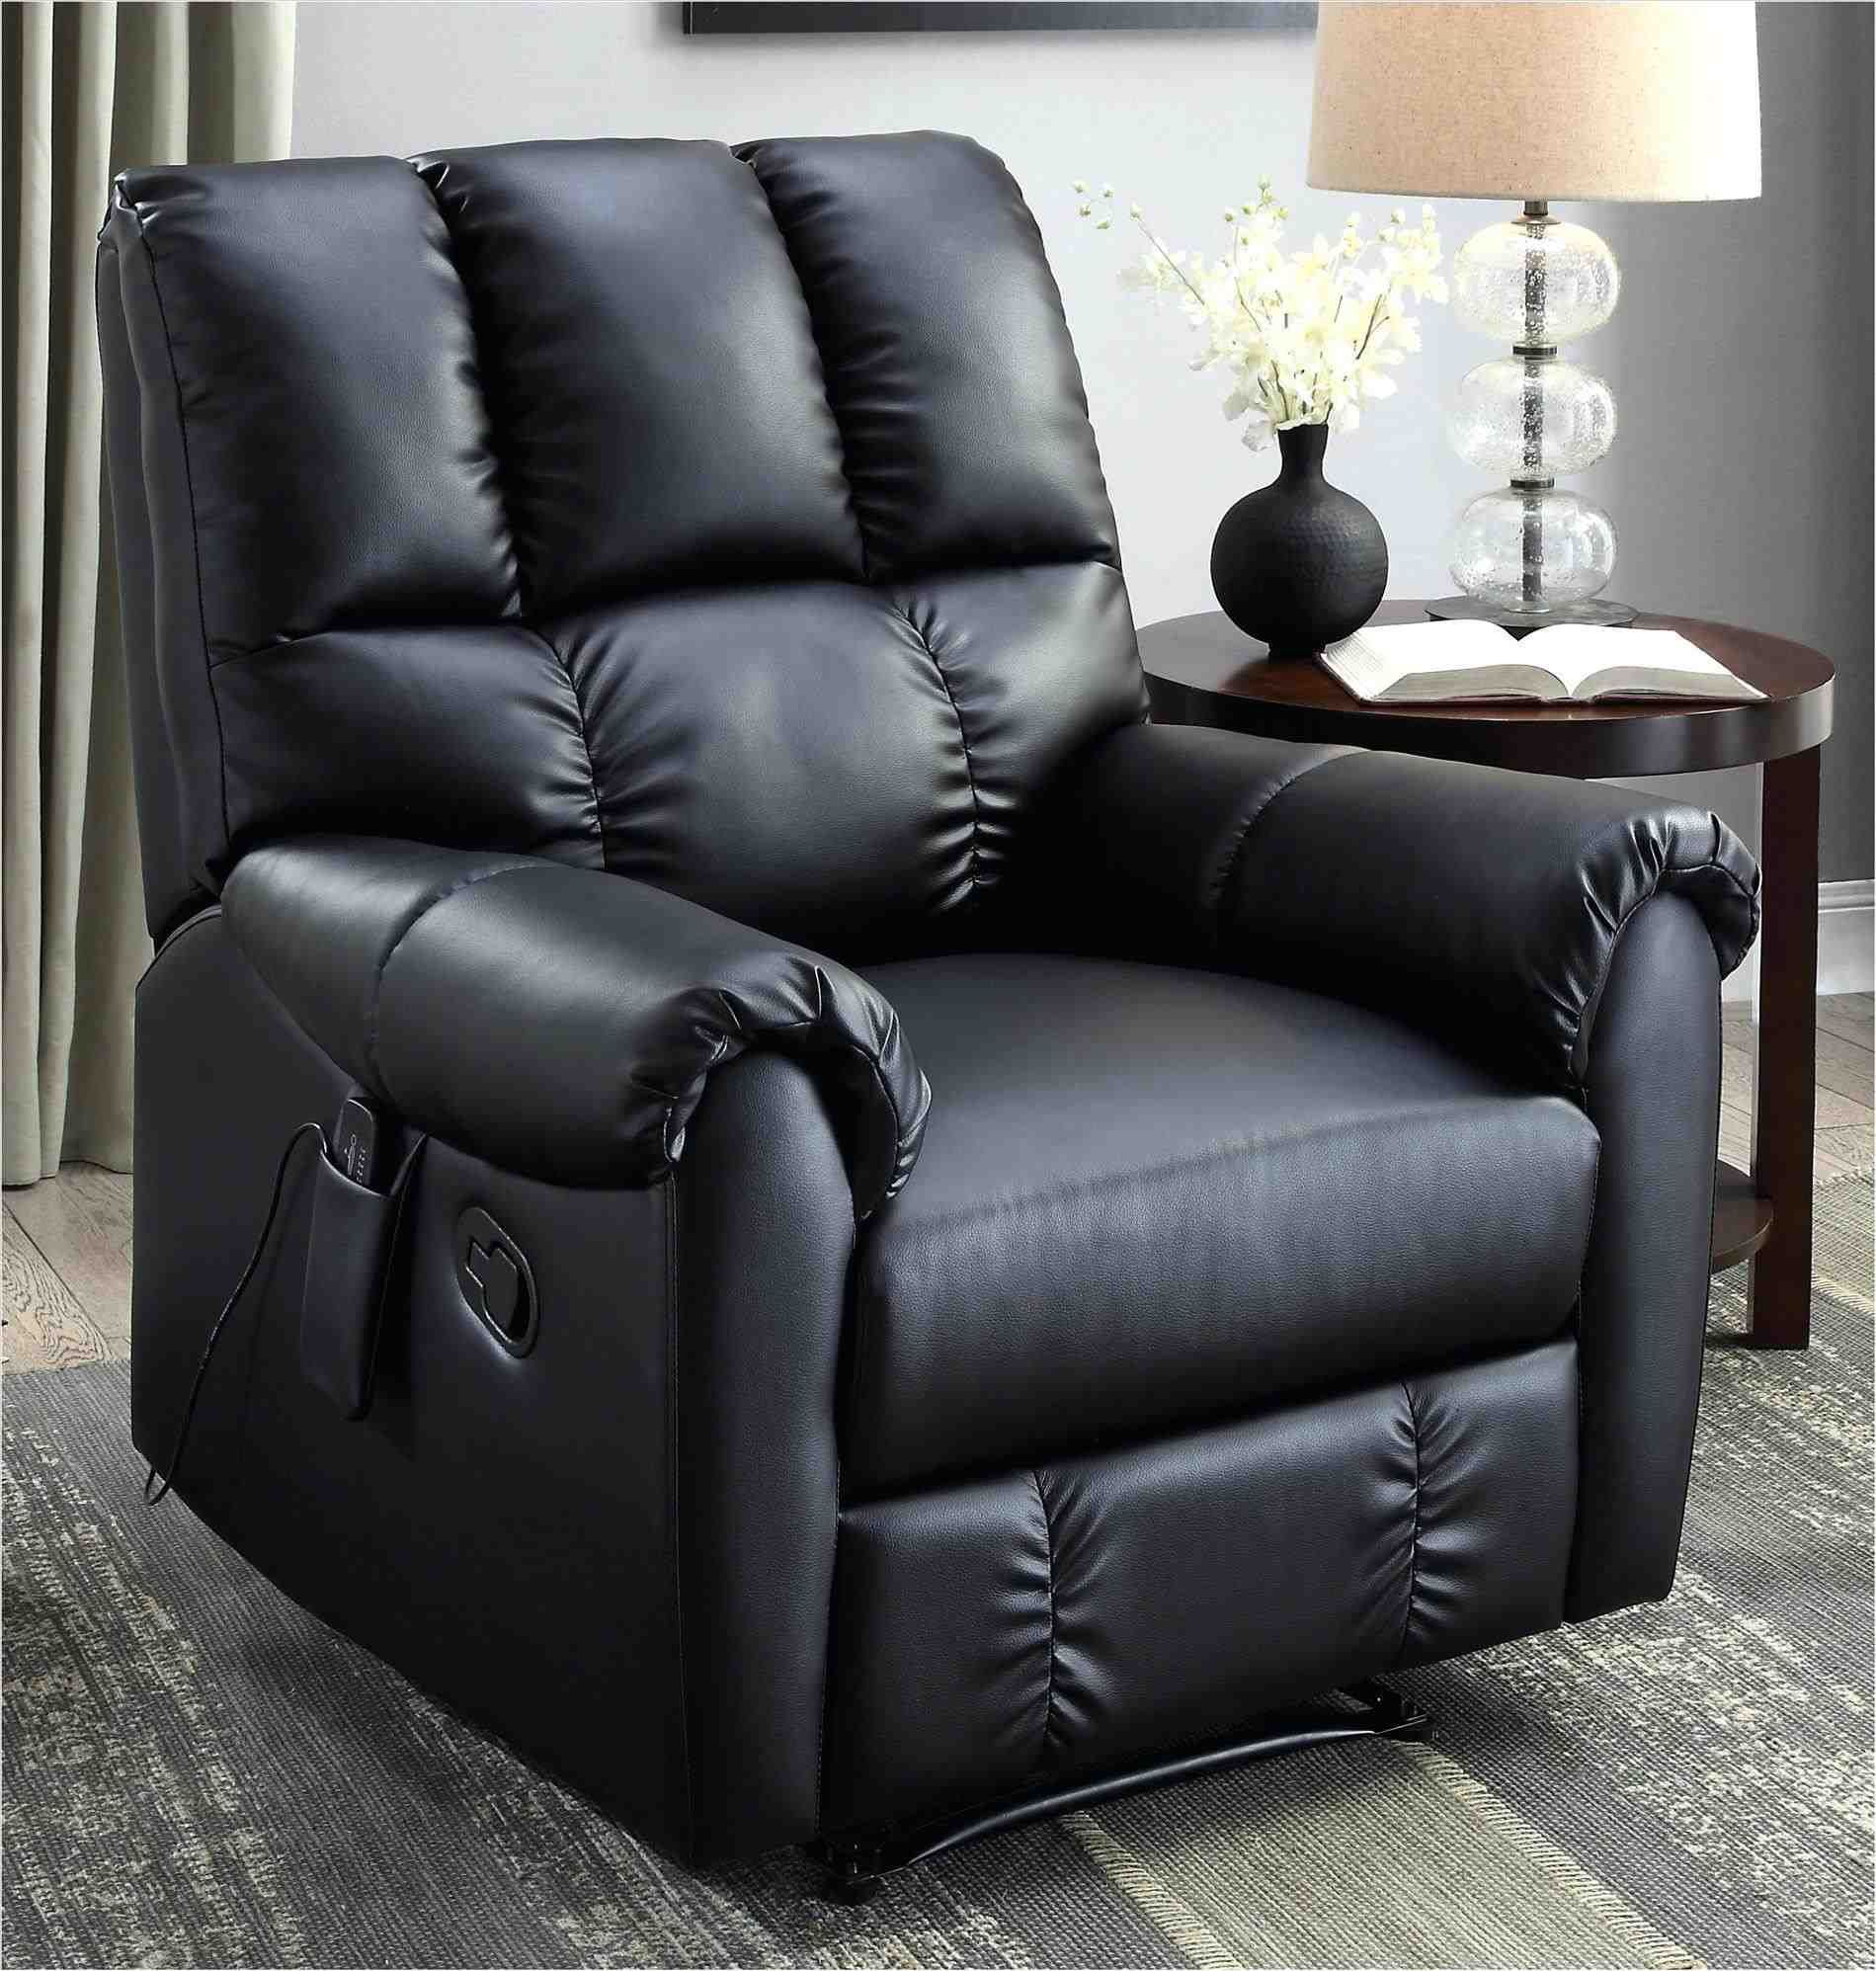 Cheap Recliners For Sale Under 200 Cheap Furniture Couches For